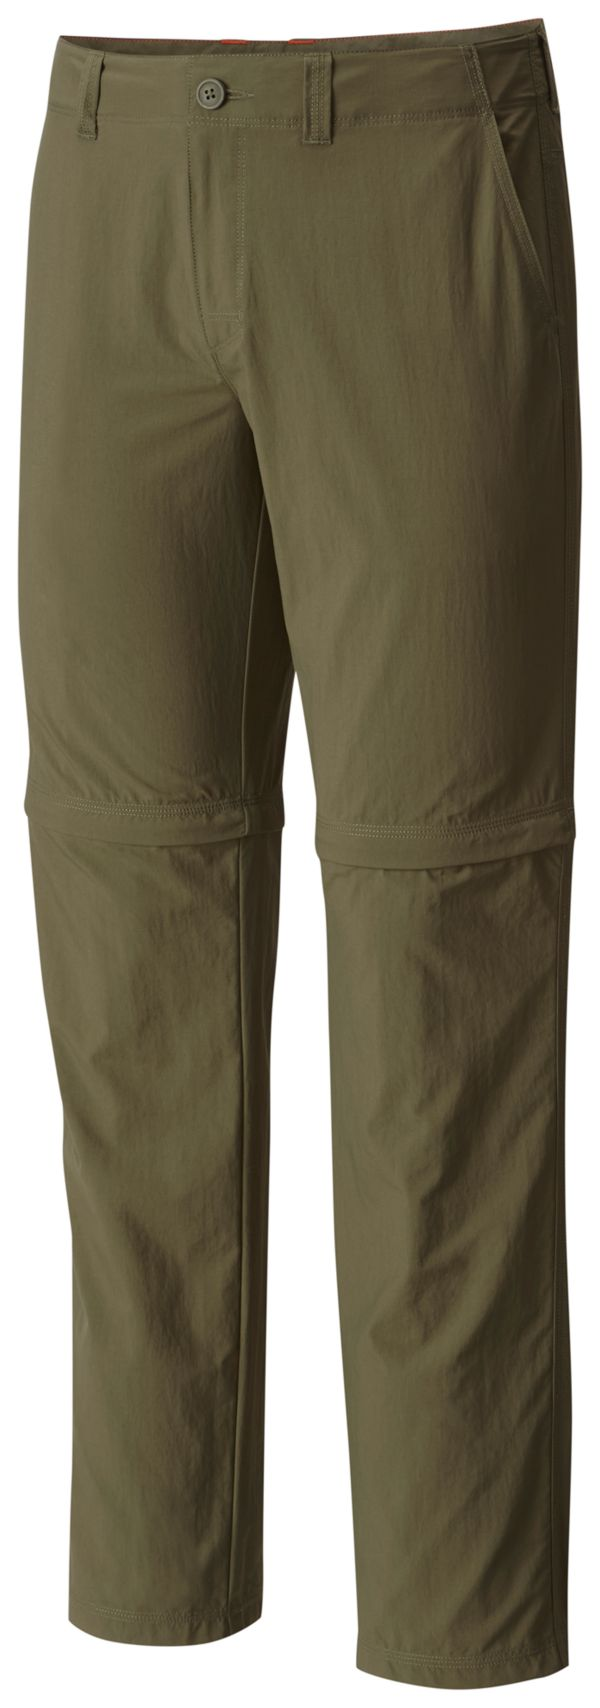 1cca02ddcb Mountain Hardwear Castil Convertible Pant - Mens, Up to 58% Off — CampSaver